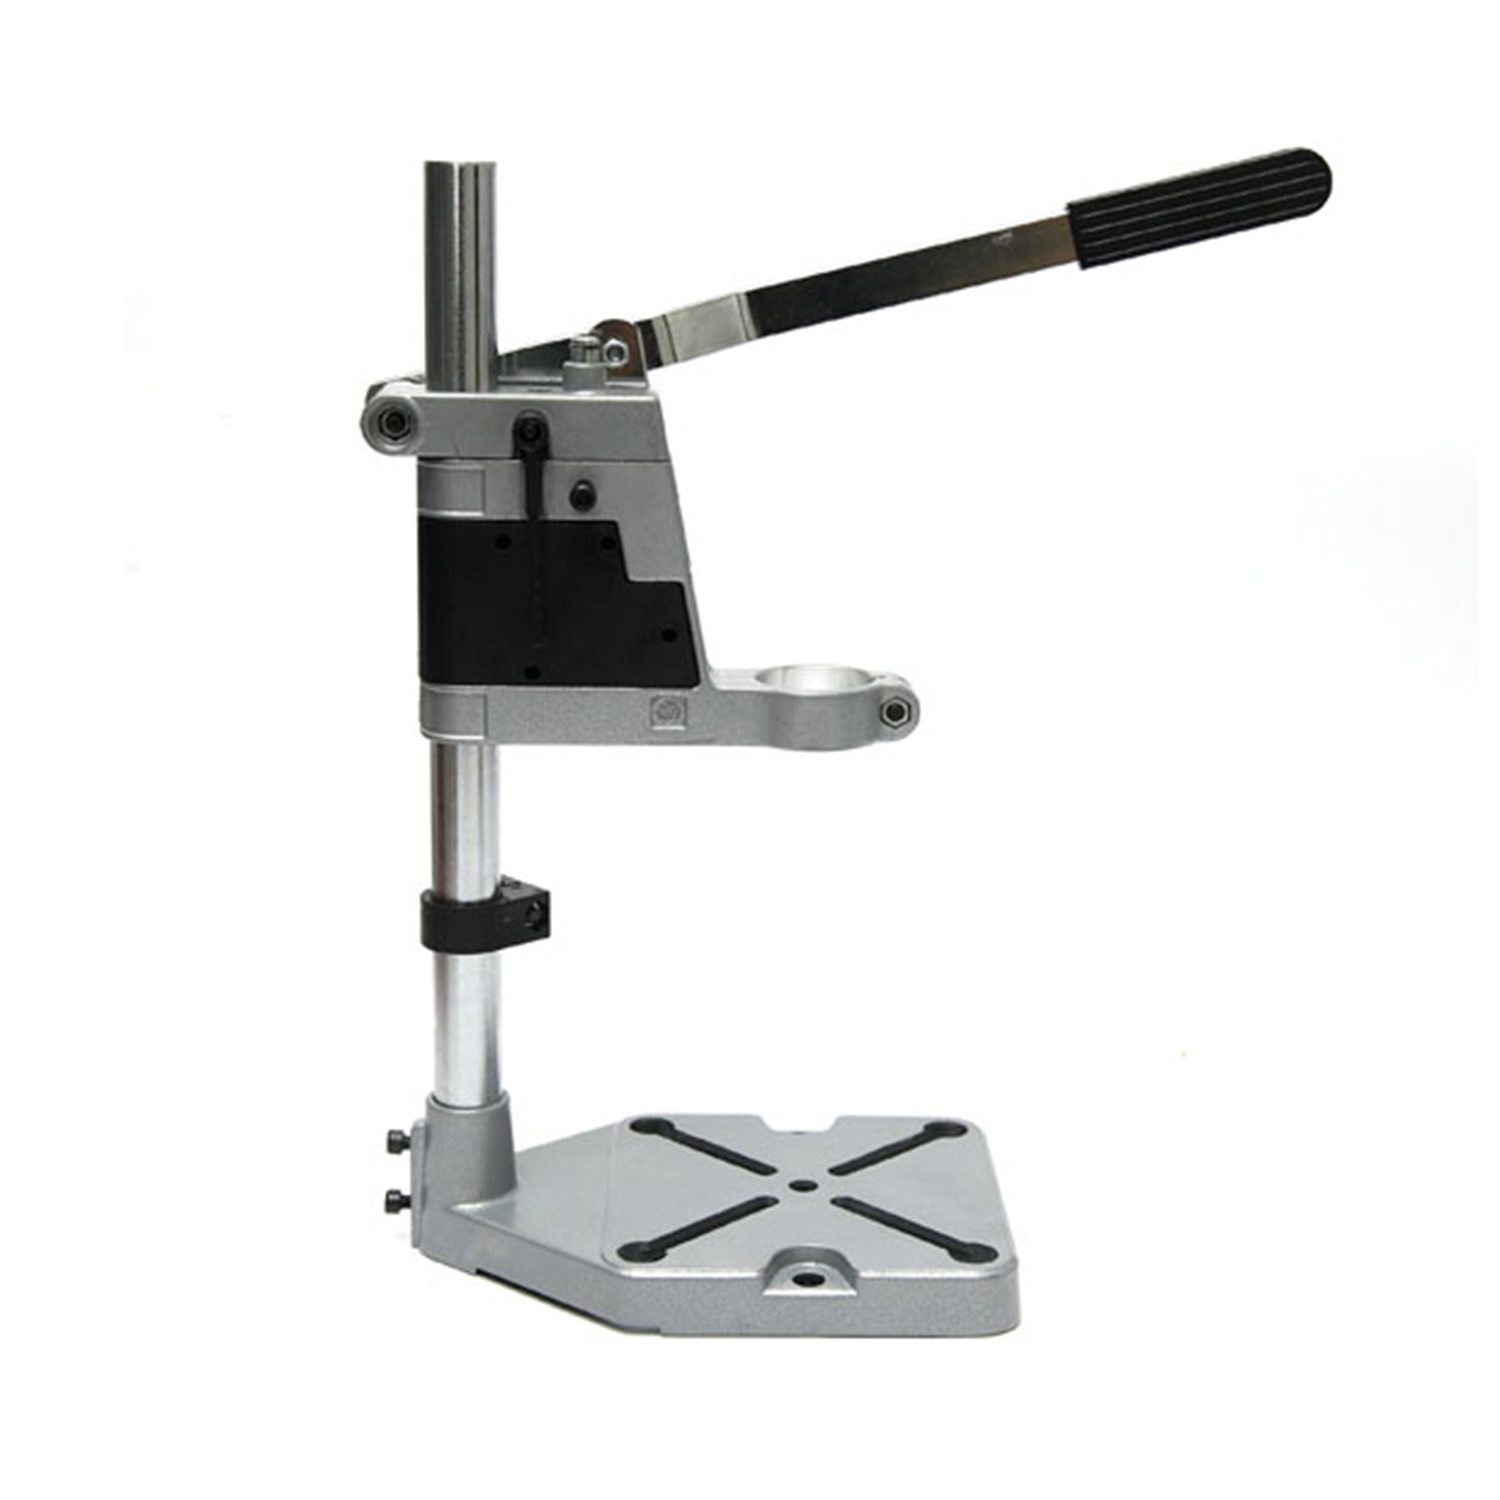 China Manufacturer for Drill stand DS-6109 Export to Islamabad